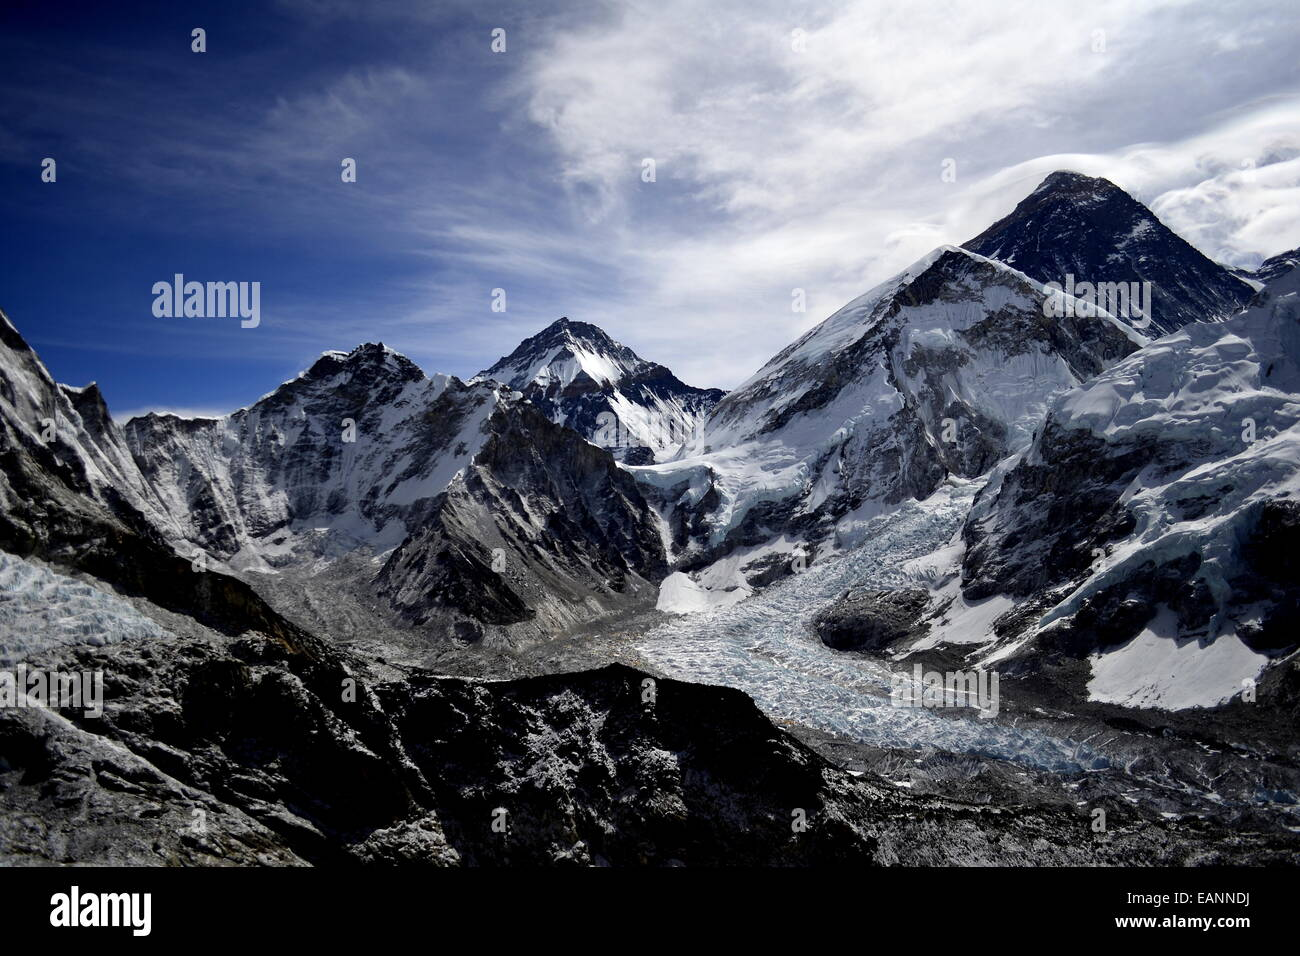 View of Mount Everest from Kala Patthar - Stock Image